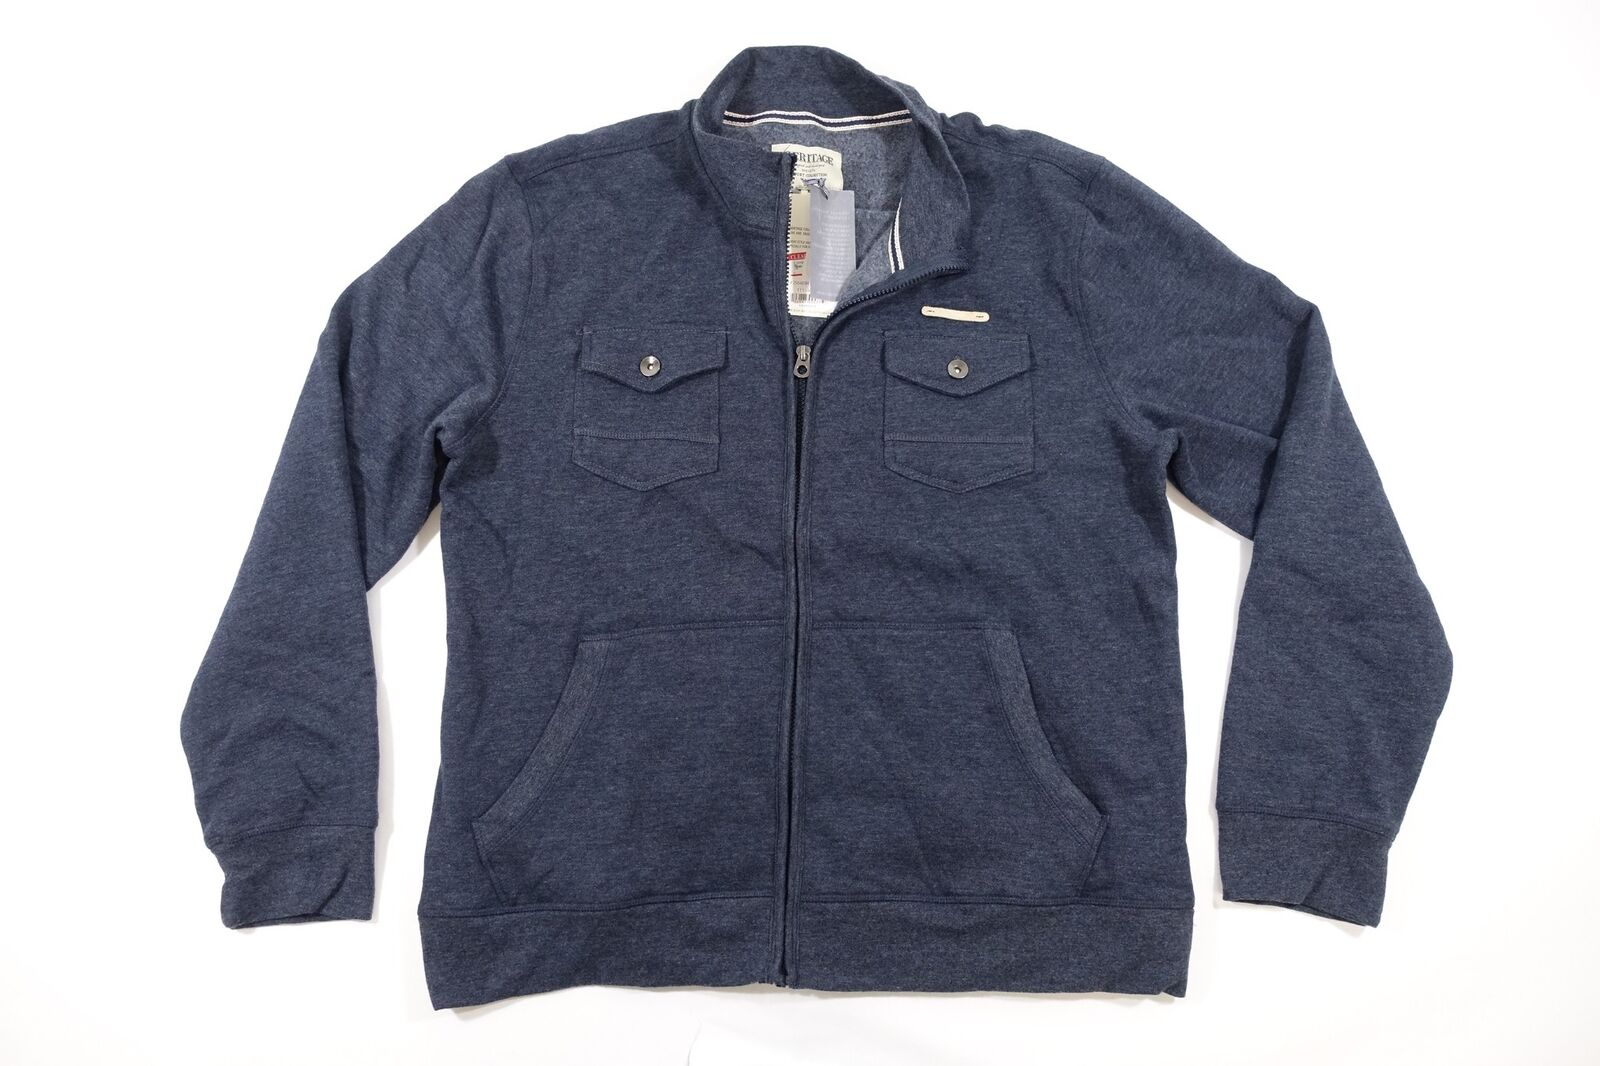 Report Collection Heritage Navy Blu Blu Blu Medio Slim Intera Tasca con Zip Maglione 43baf6